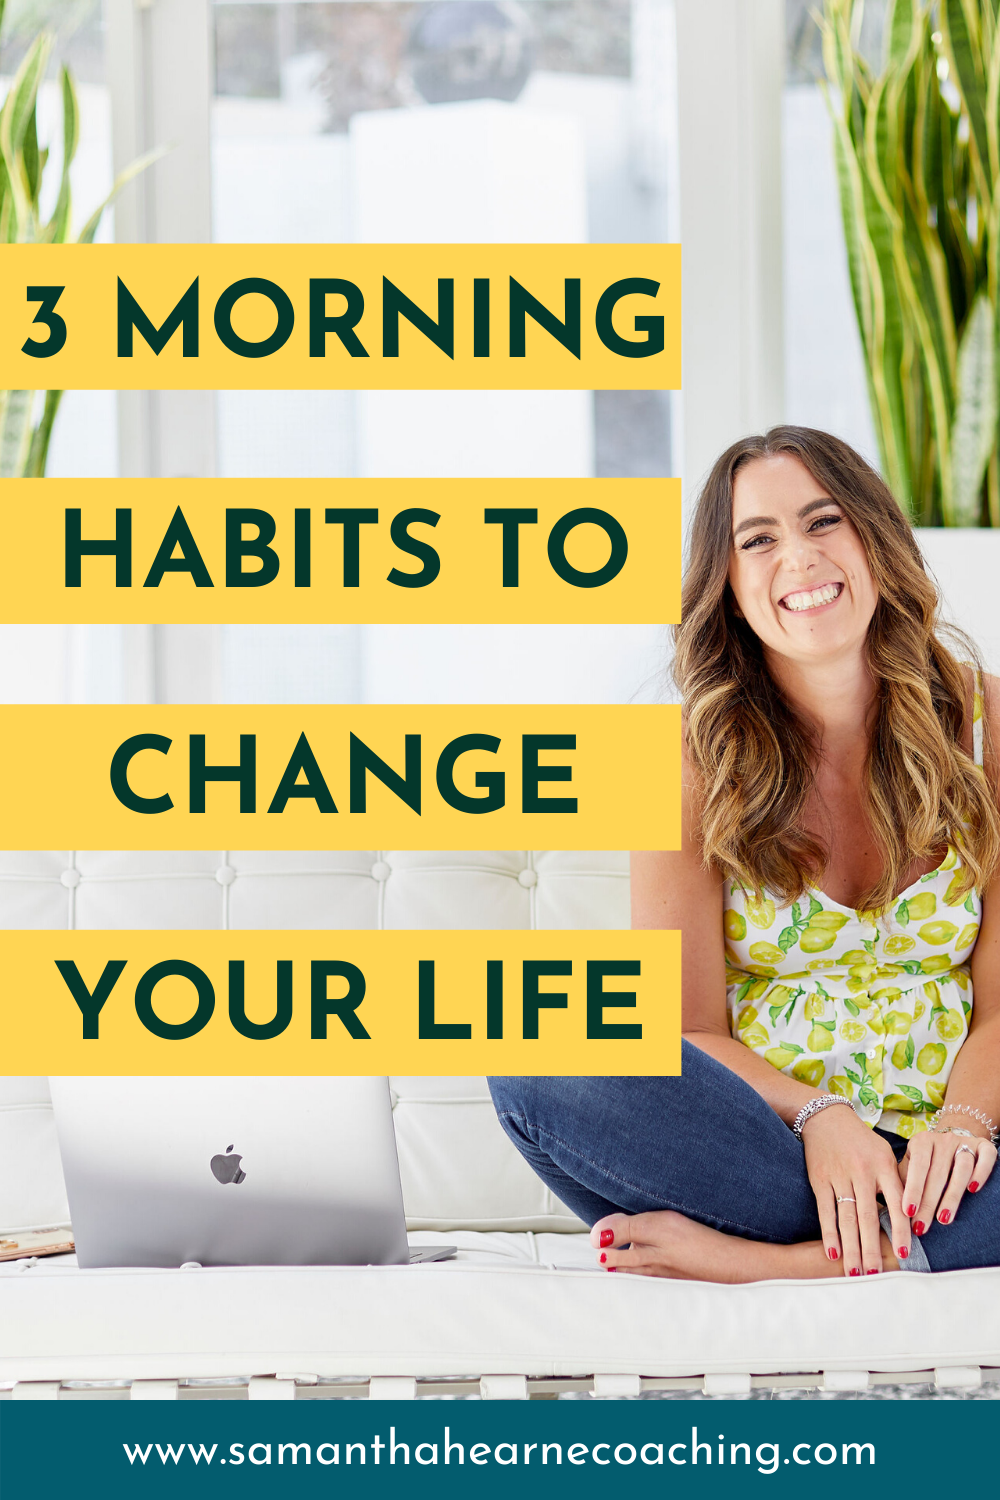 3 morning habits to change your life